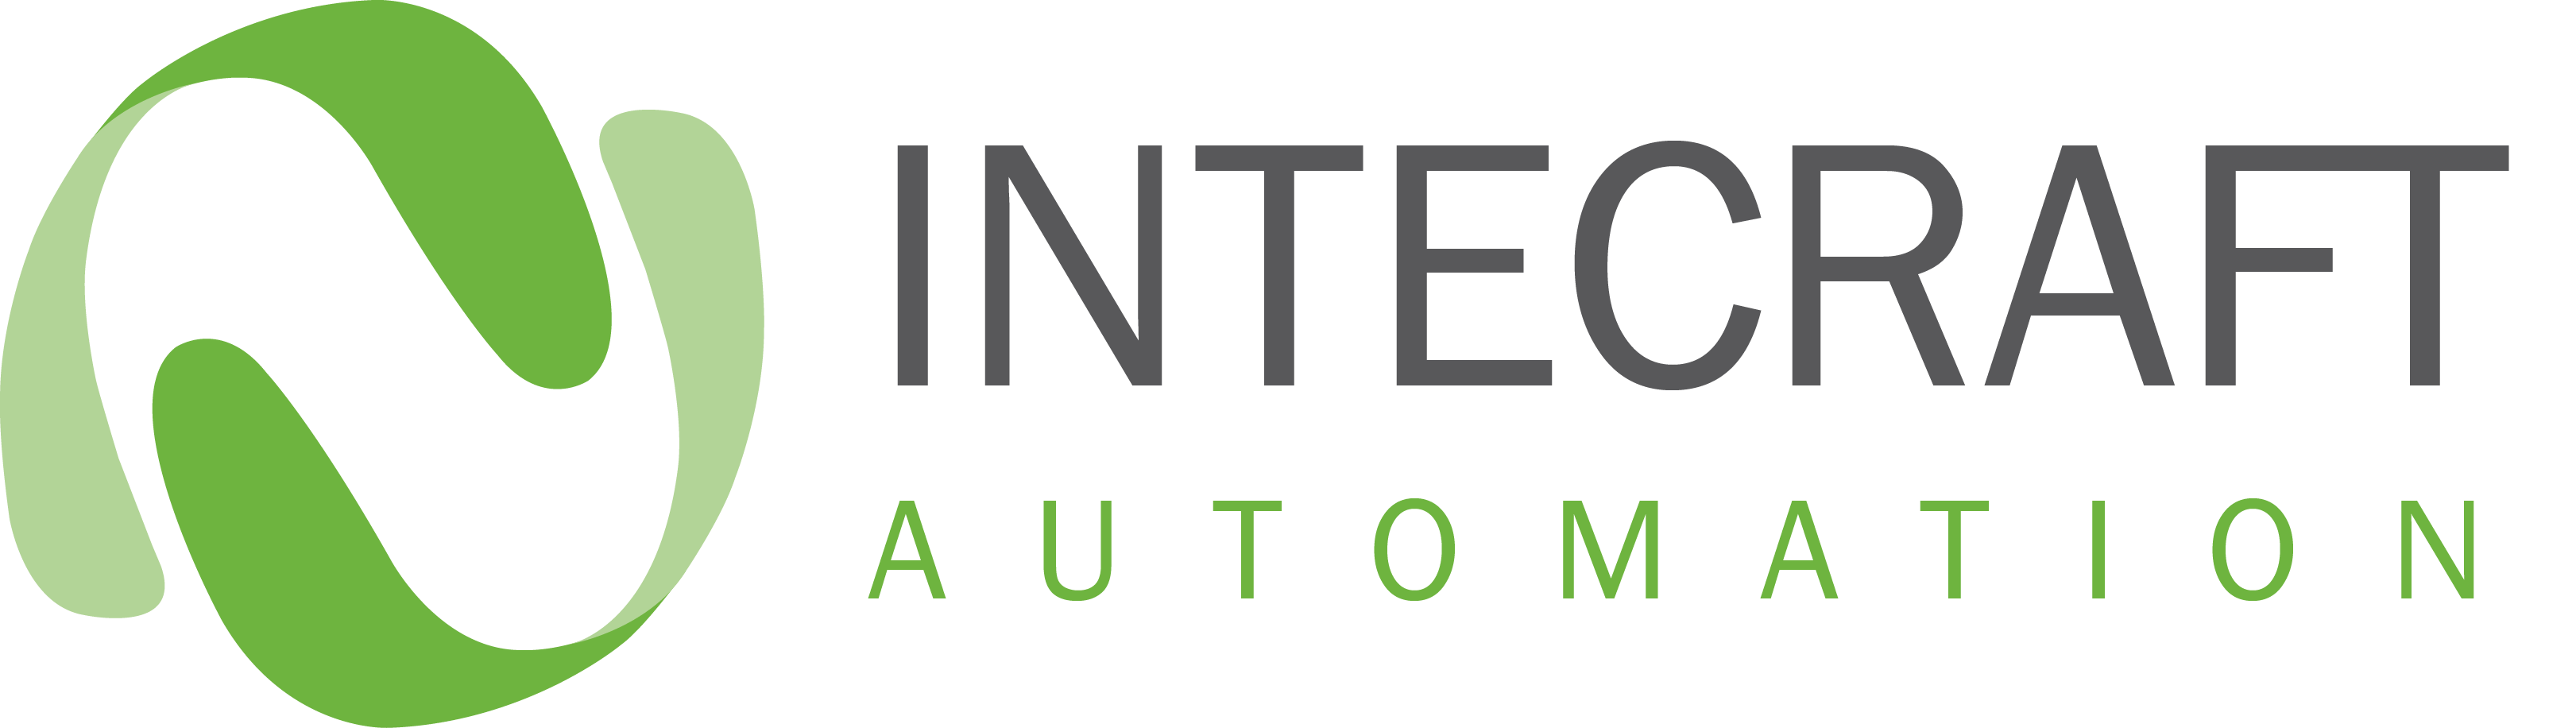 InteCraft Automation logo